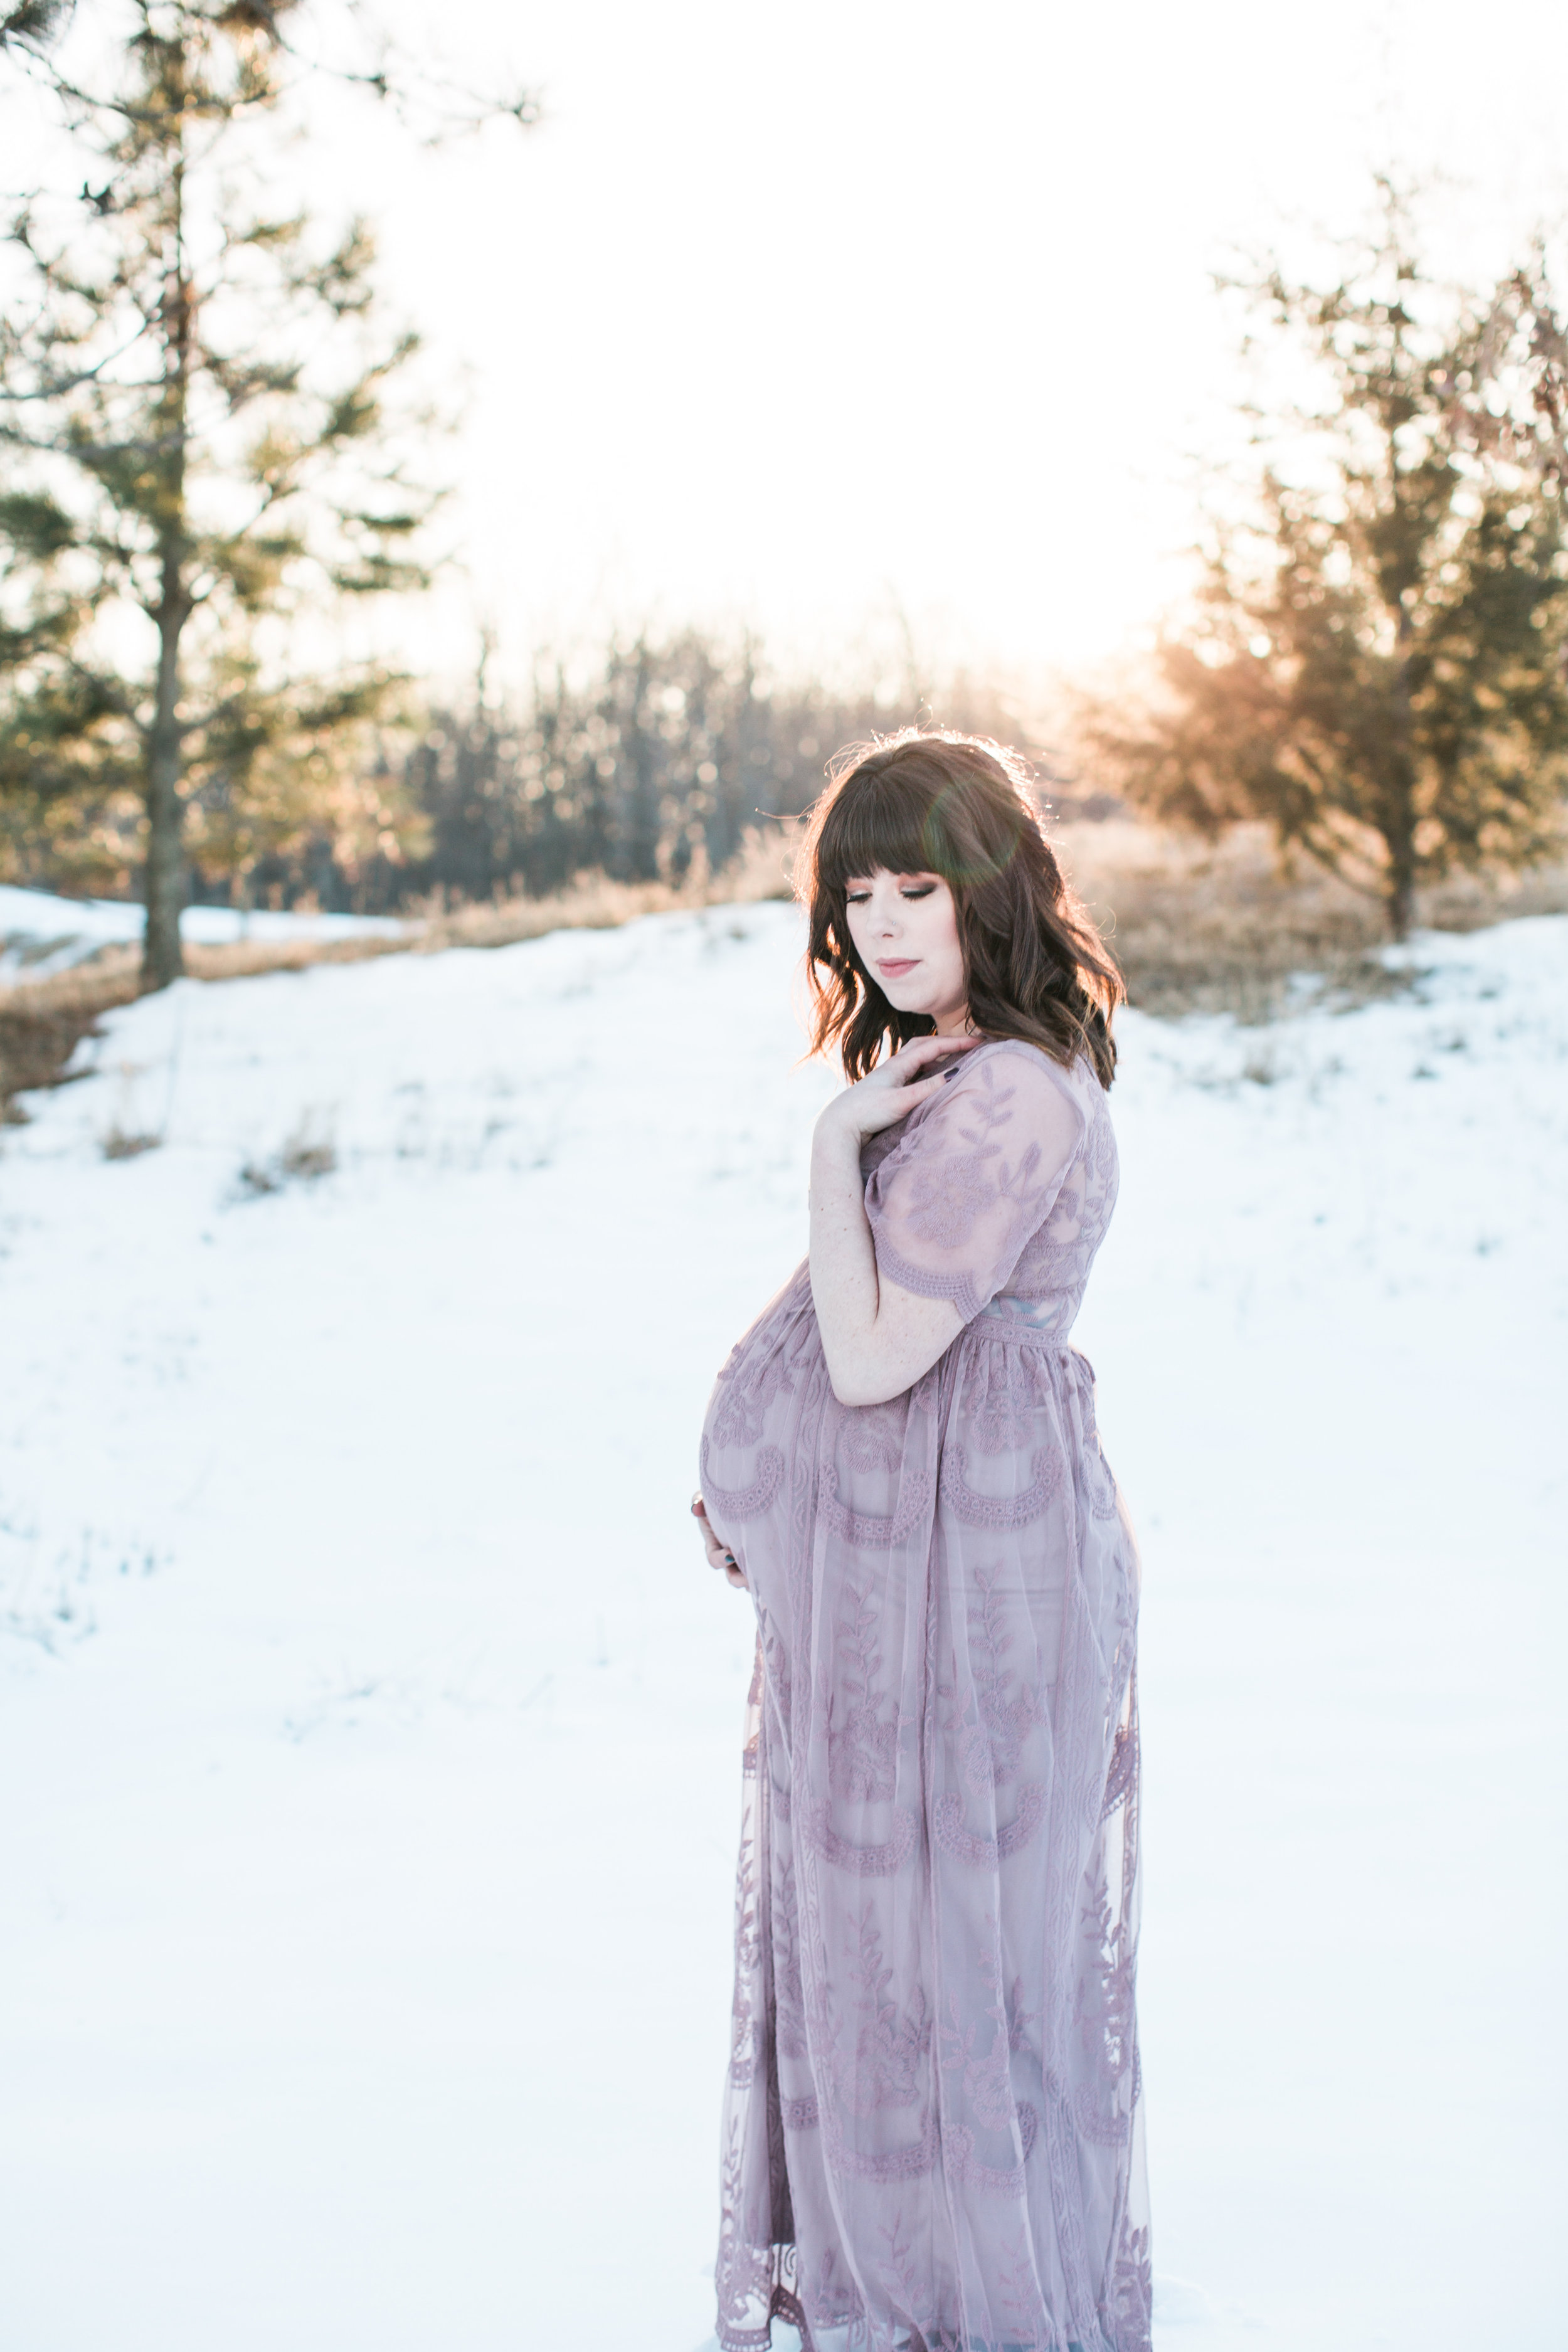 Expecting mother in pink lace dress in winter maternity photos at sunset Minnesota maternity photographer Mallory Kiesow Photography